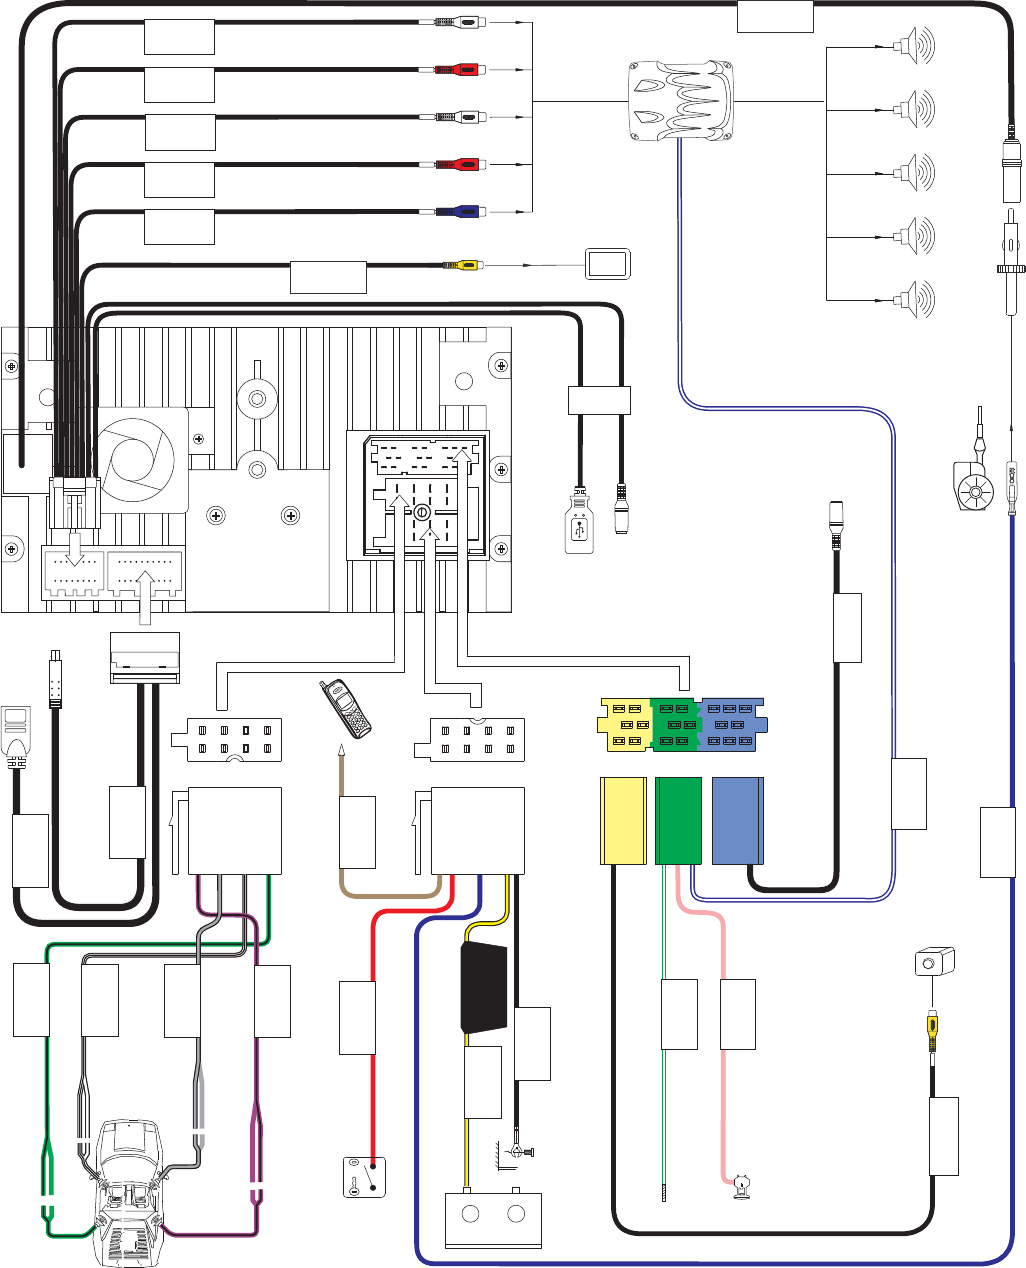 34fbcac4 7bef 4eb8 b34c 690a937048d0 bg4 jensen wiring diagram jensen vm9215bt update \u2022 wiring diagrams j jensen phase linear uv10 wiring diagram at panicattacktreatment.co